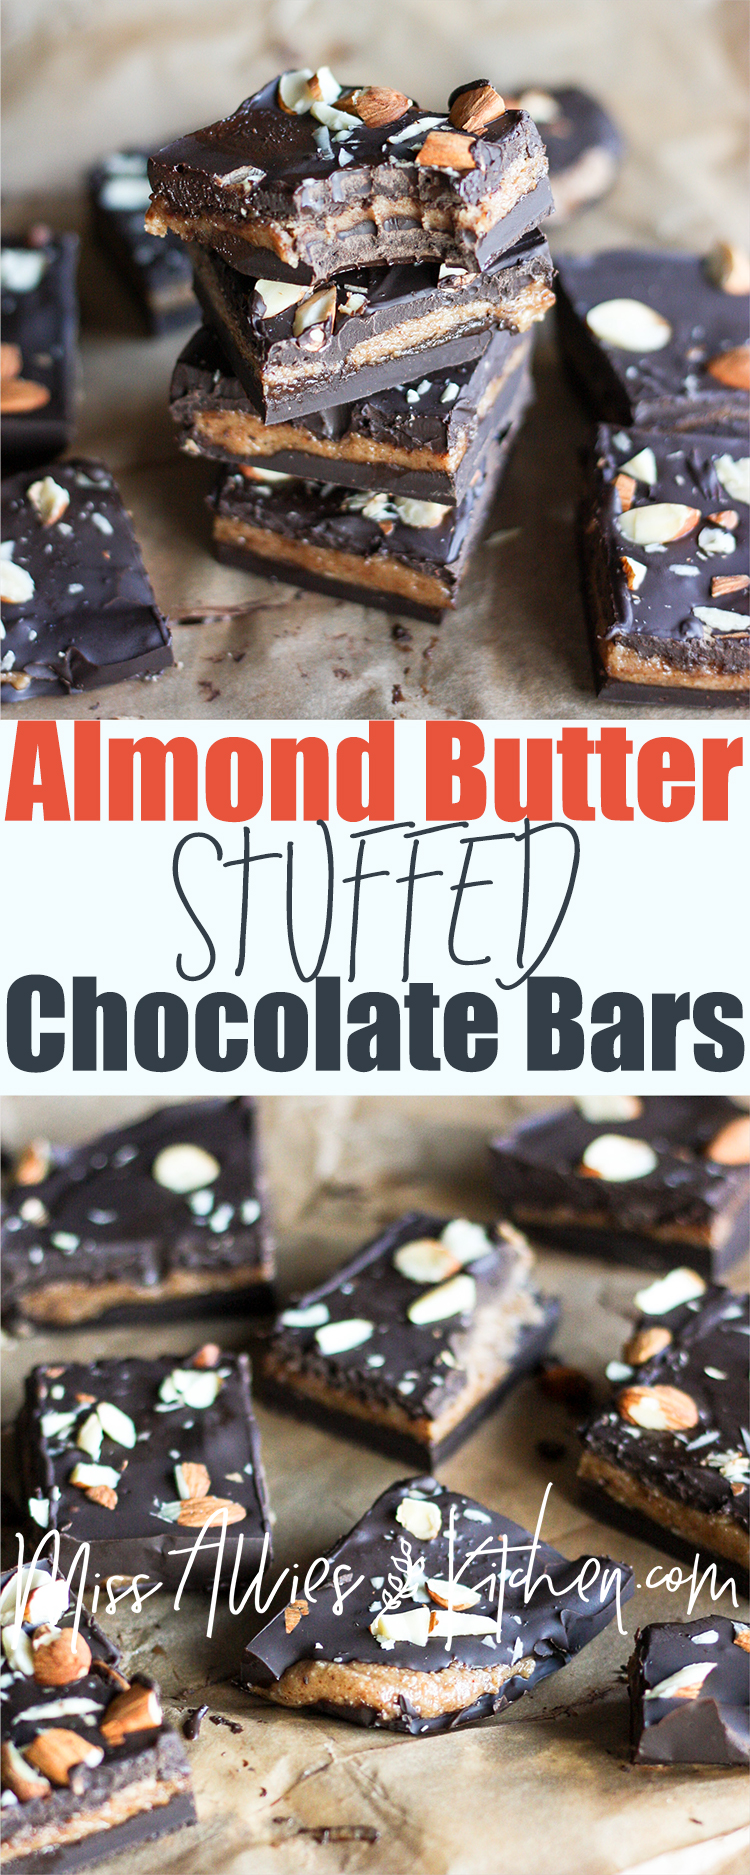 Almond Butter Stuffed Chocolate Bars - with a Paleo option!